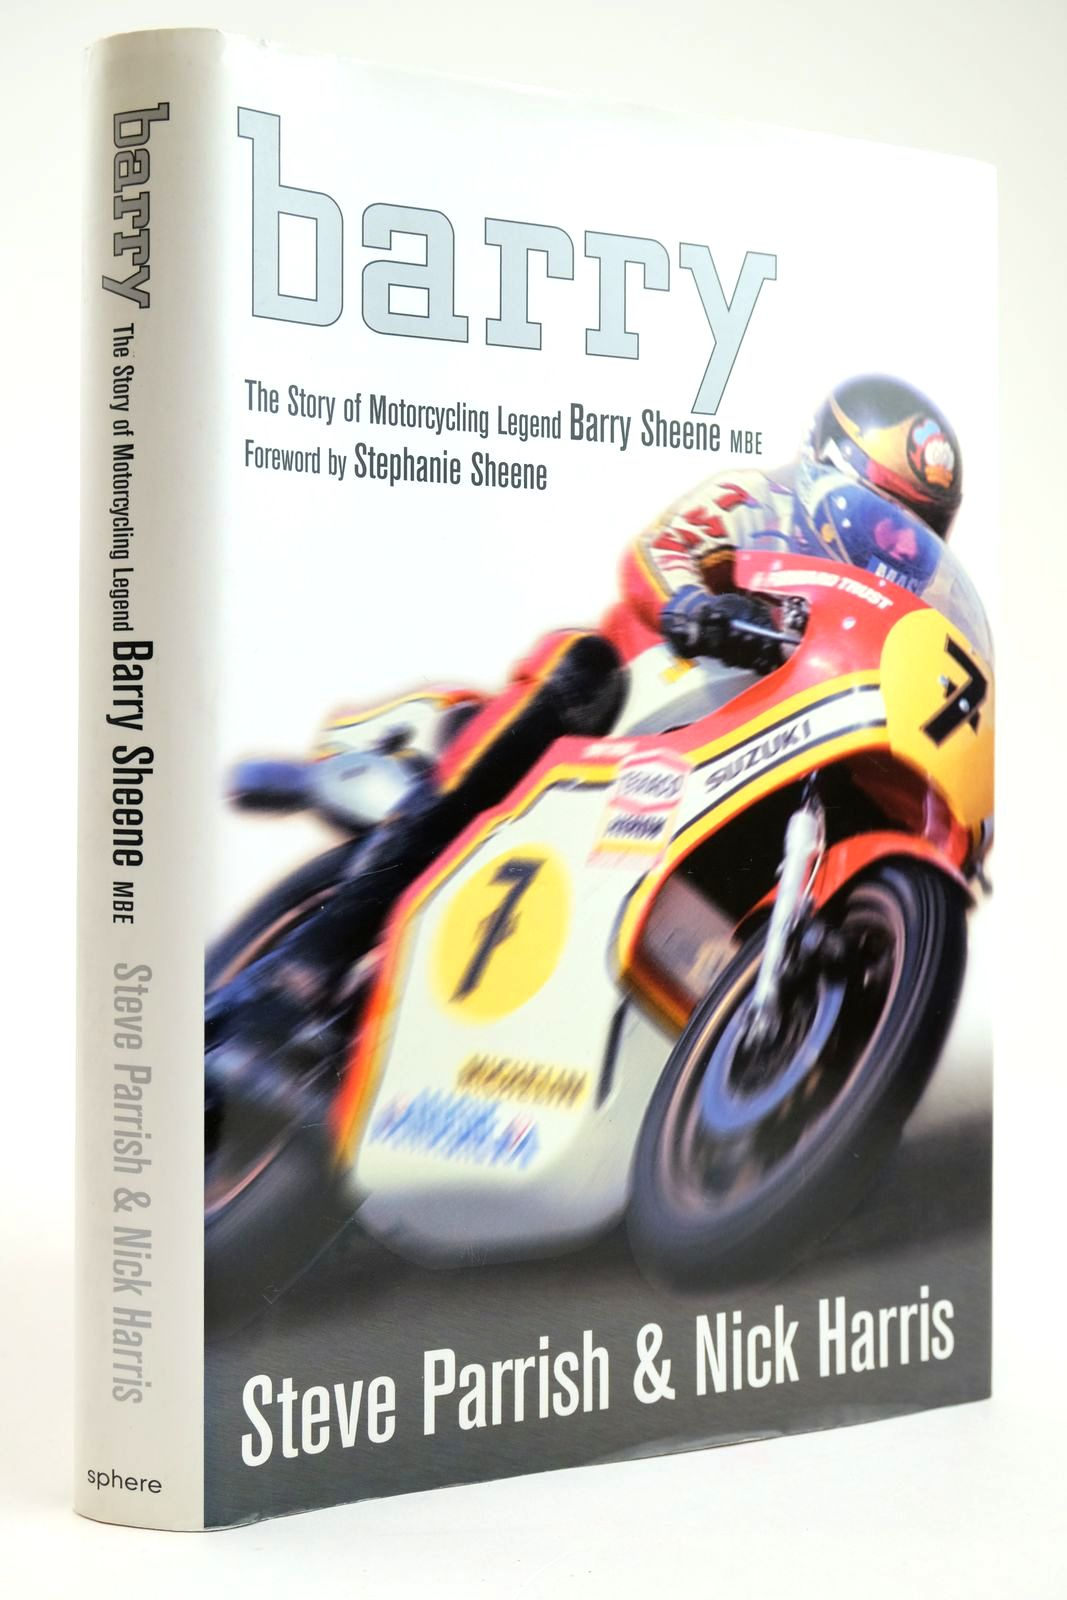 Photo of BARRY THE STORY OF MOTORCYCLING LEGEND BARRY SHEENE, MBE- Stock Number: 2133569